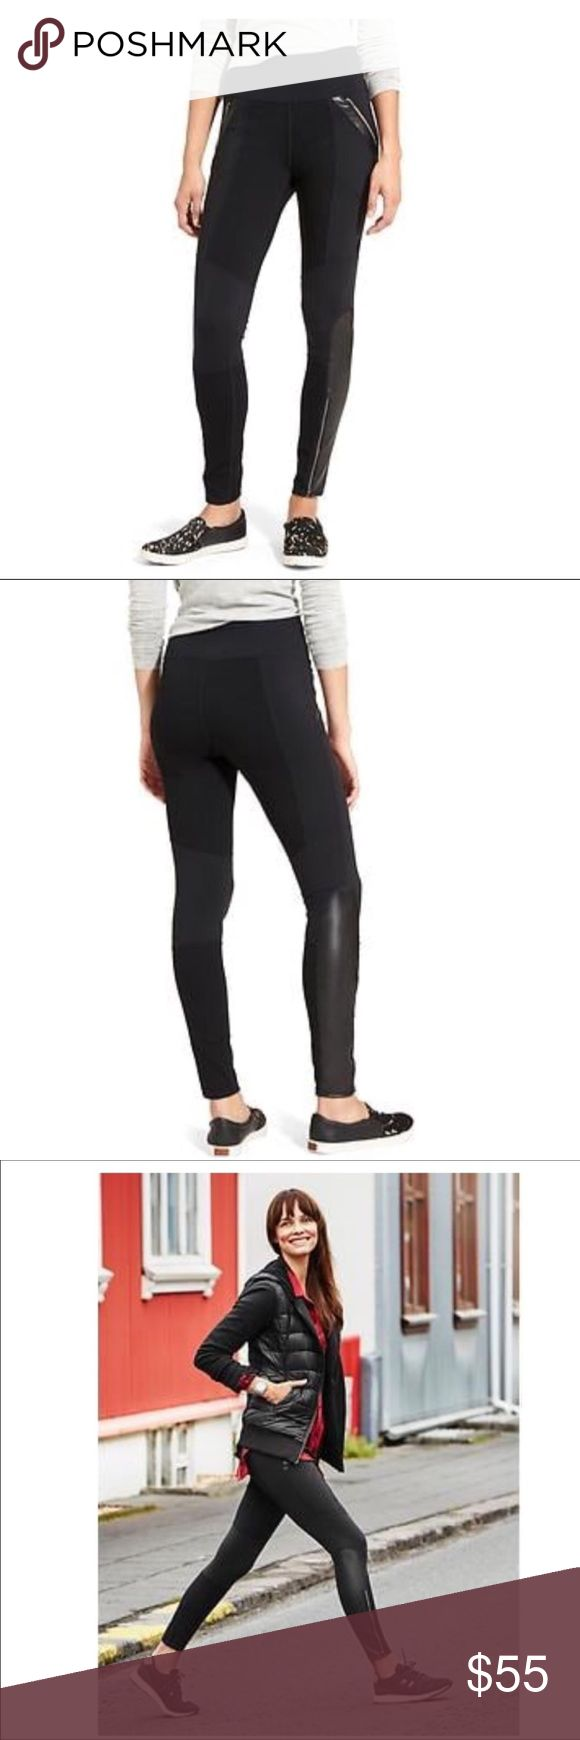 """Ponte Luxe Legging Fitted, high rise, tight leg. Fits next to the skin, sits at the waist. Waist measures 13"""". Inseam measures 26"""". Color is Black. Size is Small. Athleta Pants Leggings"""